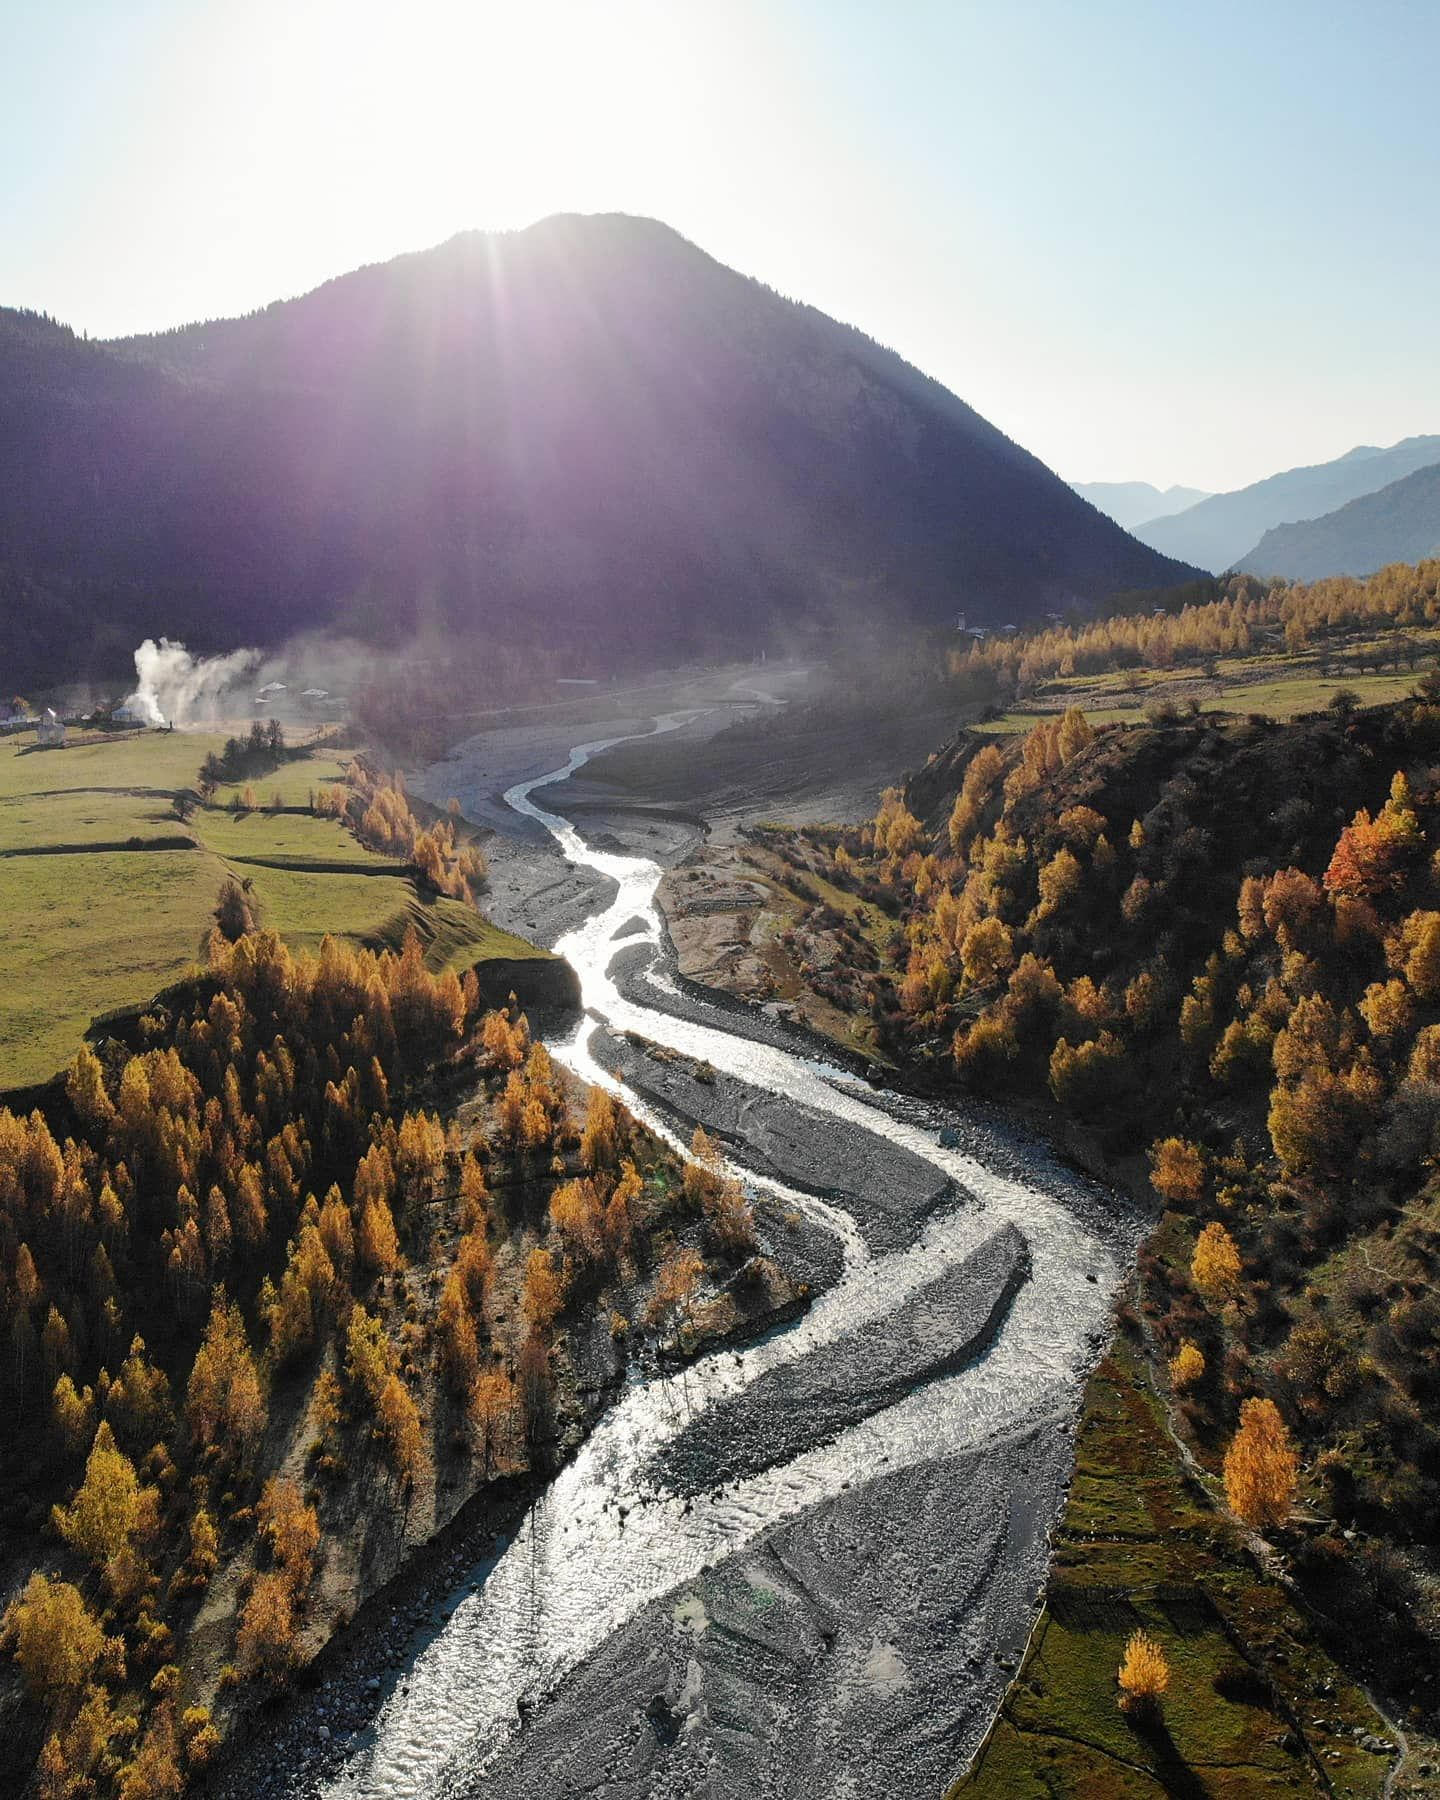 Georgian Autumn  . Just when we arrived at the small village of Zhabeshi I sent the drone up to catch the sunset light over the Georgian moutains. The astonishing colors of autumn were accompanied by a swirly stream of cold water. The water originates from the glacier Tsaneri about 7km upstream. .  DJI Mavic Air  Zhabeshi Georgia  27th of October 2019 . . . . . . . . @dji_official @djiglobal @natgeotravel @lexarmemory @ourfotoworld  @georgiatravel @wizzair @natgeoyourshot @natgeonl @eclectic_sho